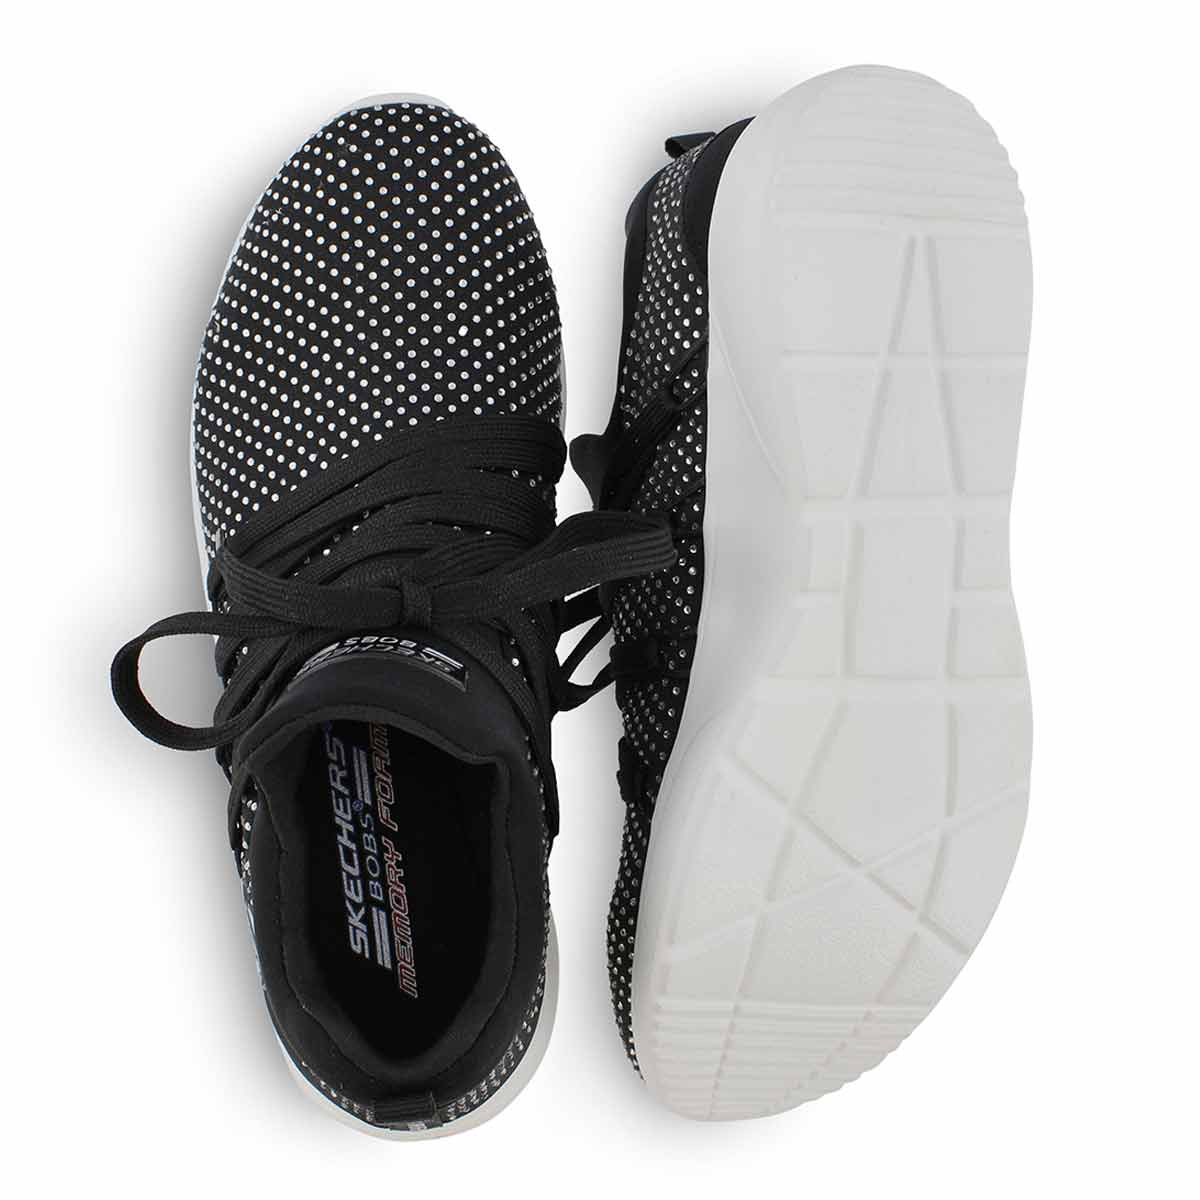 Lds Bobs Sparrow blk lace up snkr